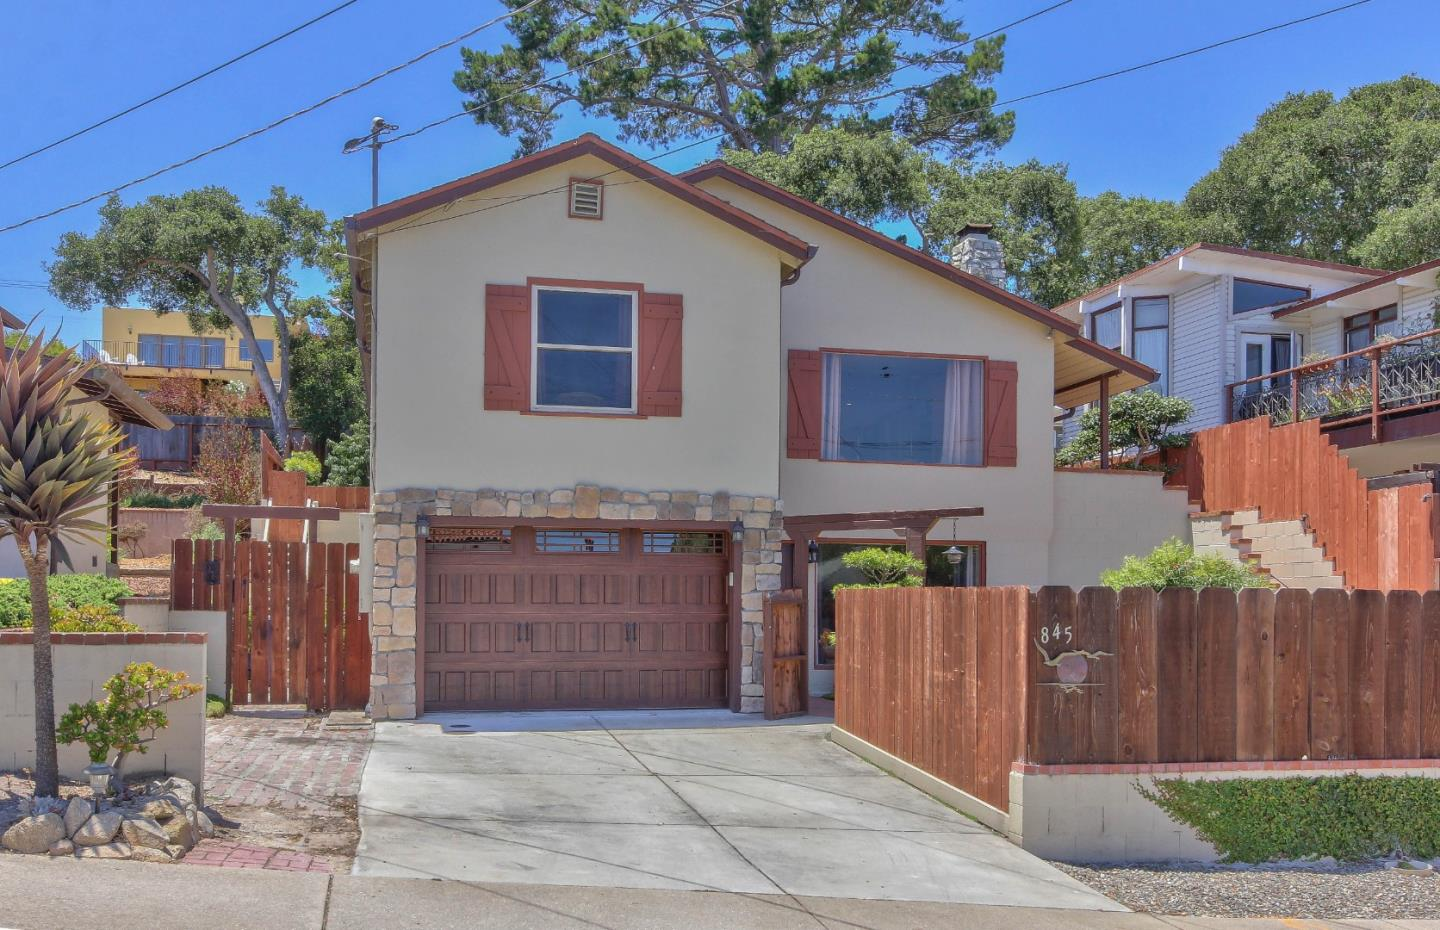 Photo of 845 Pine ST, MONTEREY, CA 93940